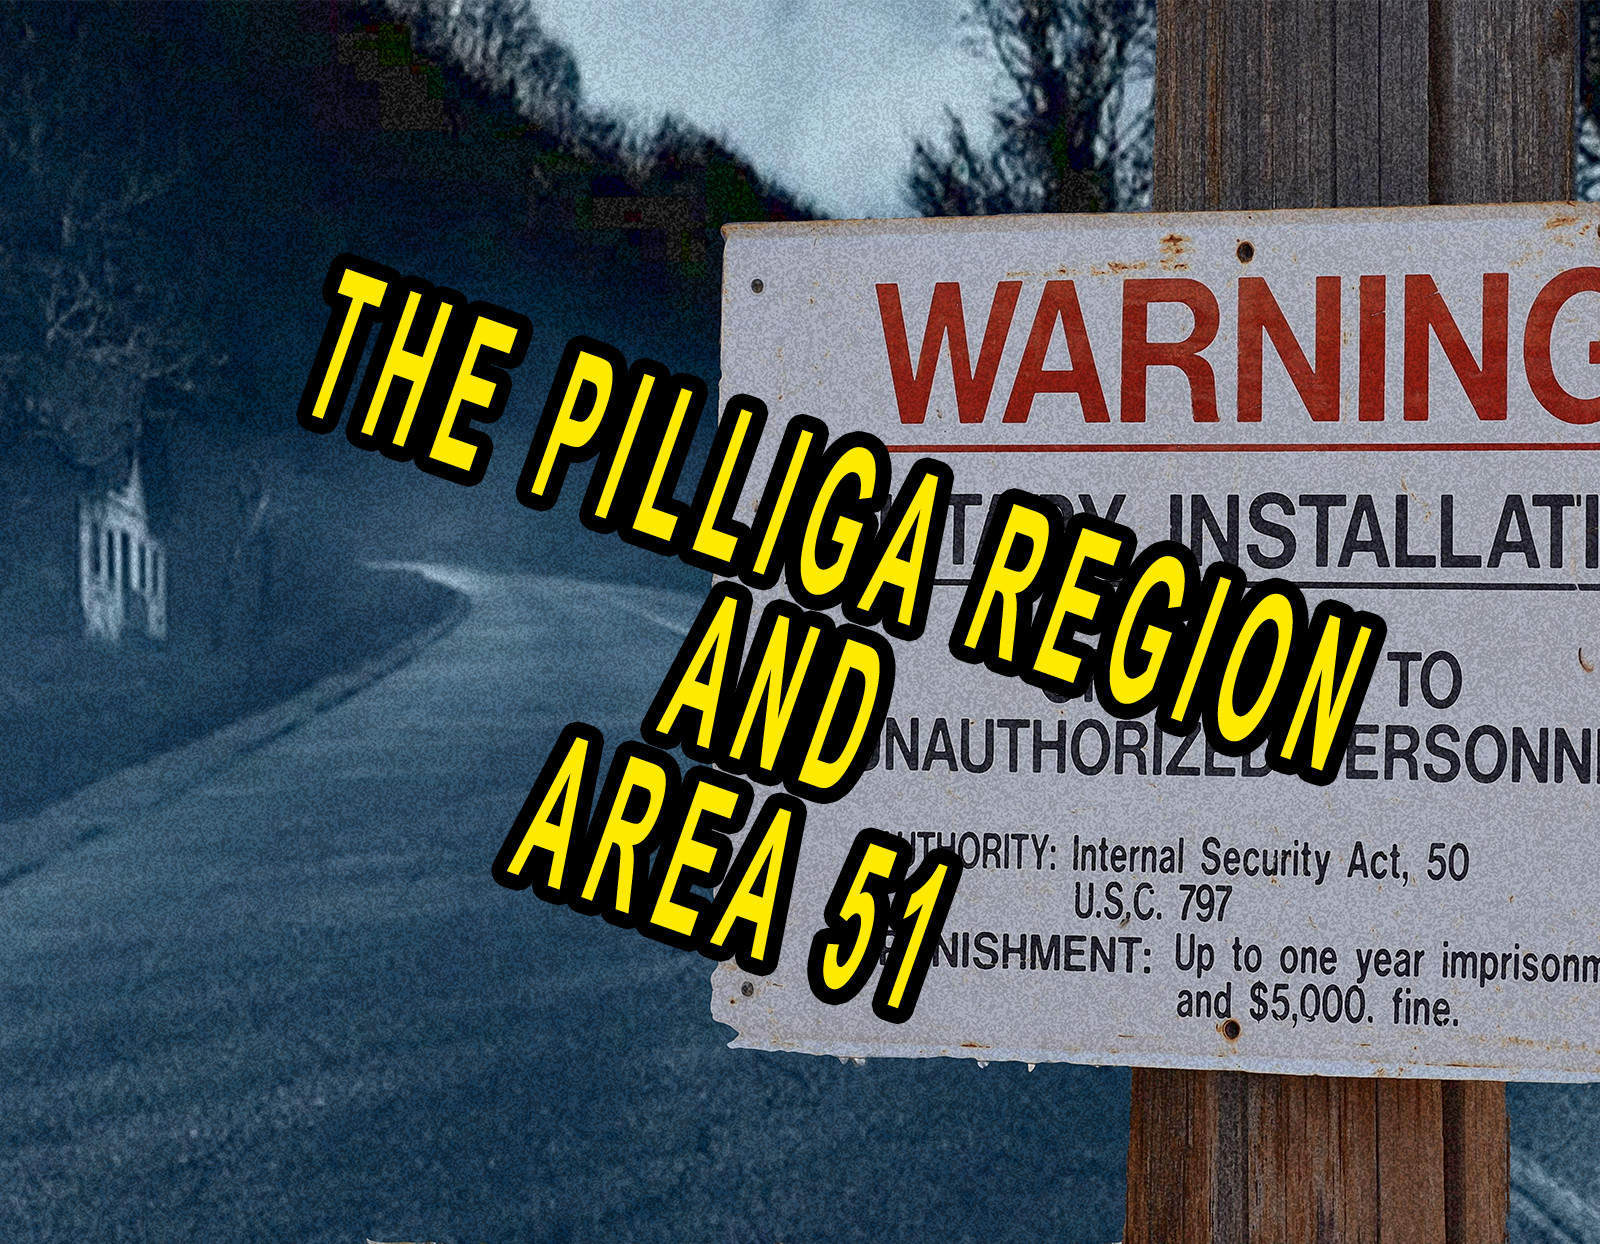 The Pilliga Region and Area 51 From Get Spooky Is Now Available